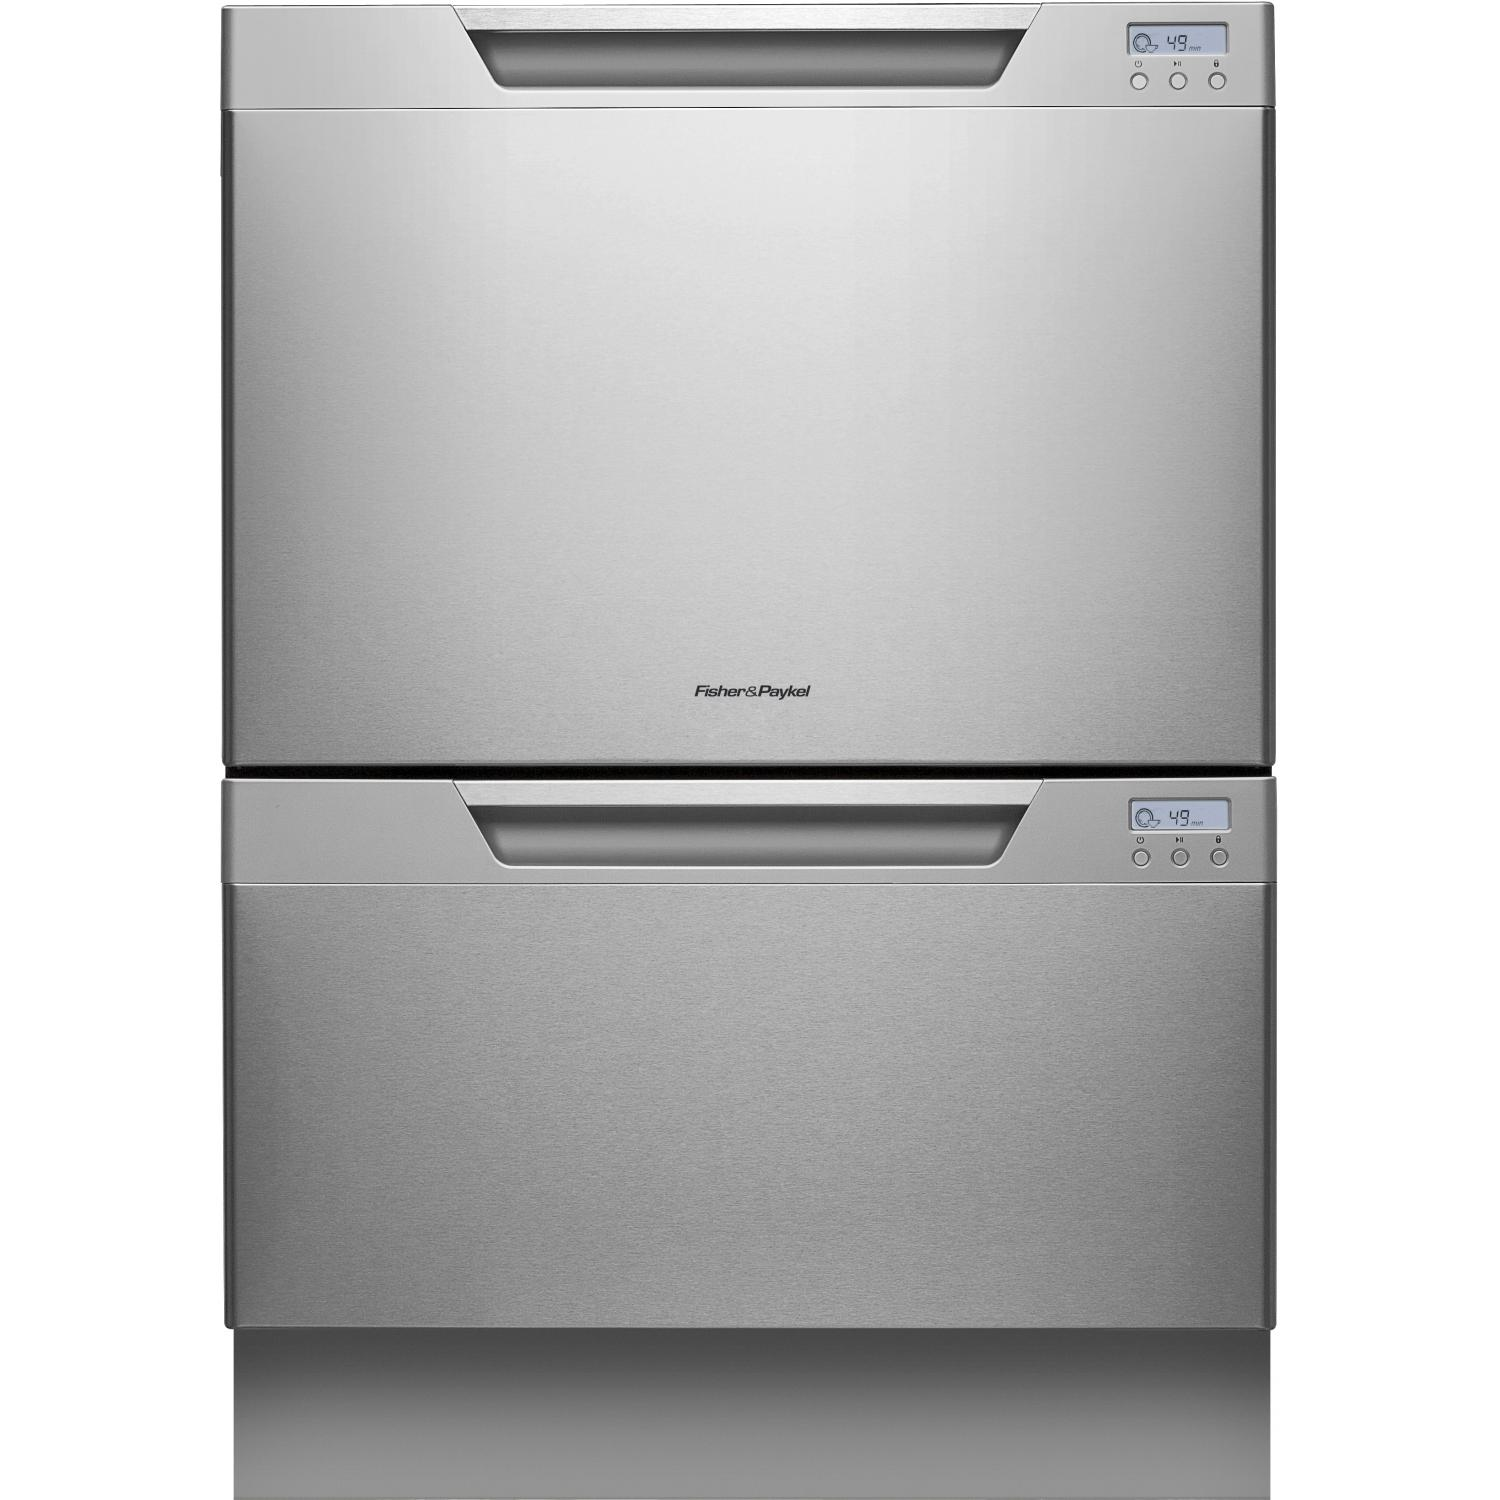 Fisher Paykel DD24DCHTX7 Double DishDrawer Tall With Water Softener - Stainless Steel